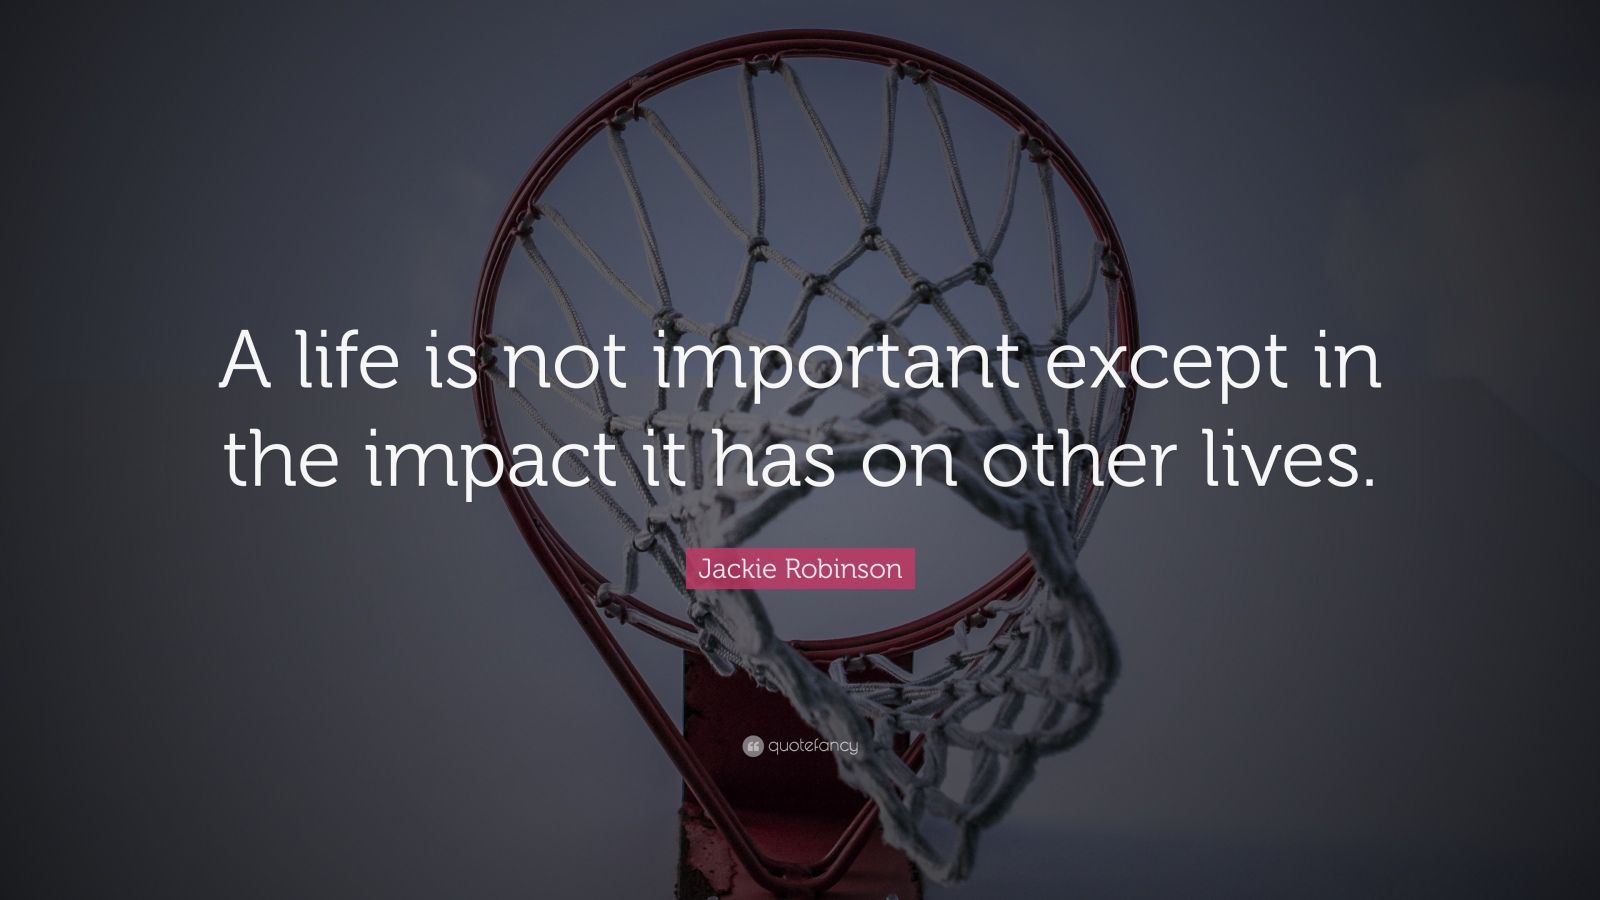 Motivational Wallpaper Quotes Kobe Jackie Robinson Quote A Life Is Not Important Except In